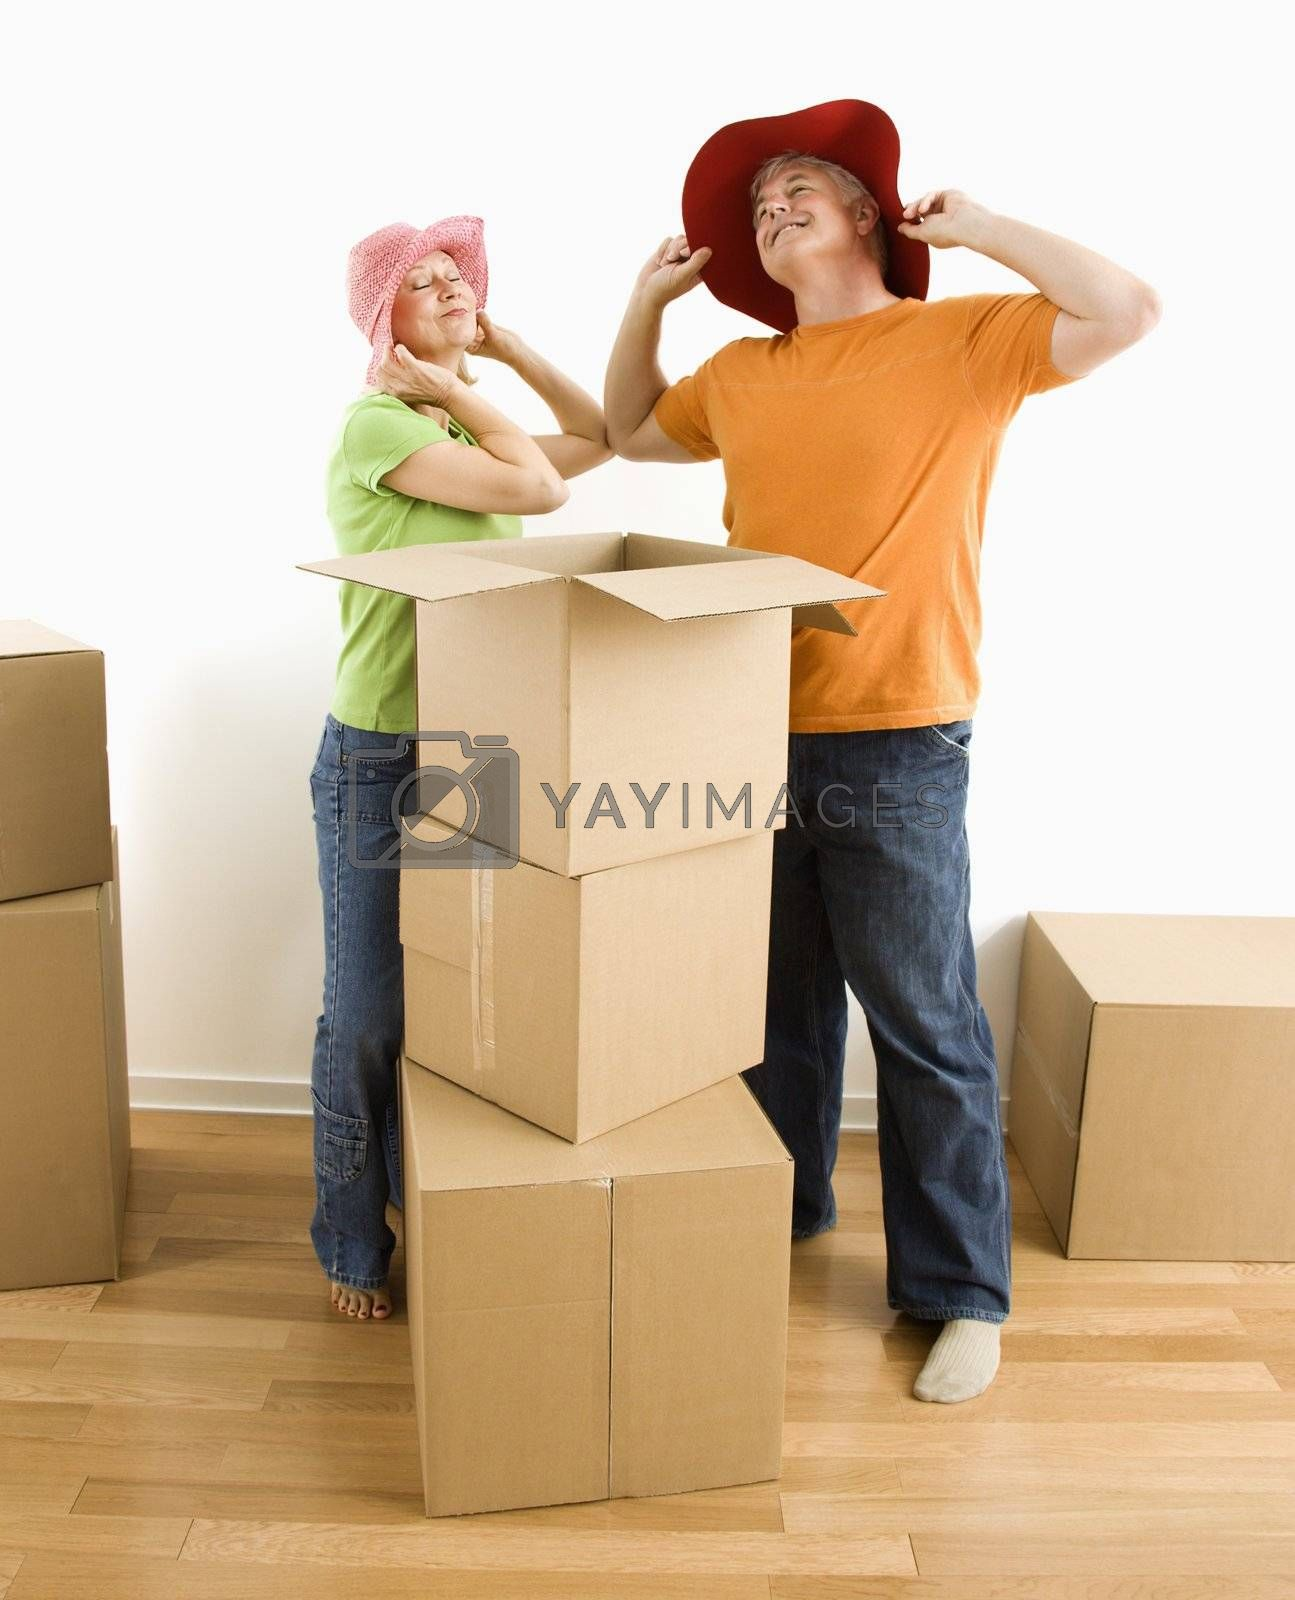 Middle-aged couple trying on silly hats while packing or unpacking moving boxes.